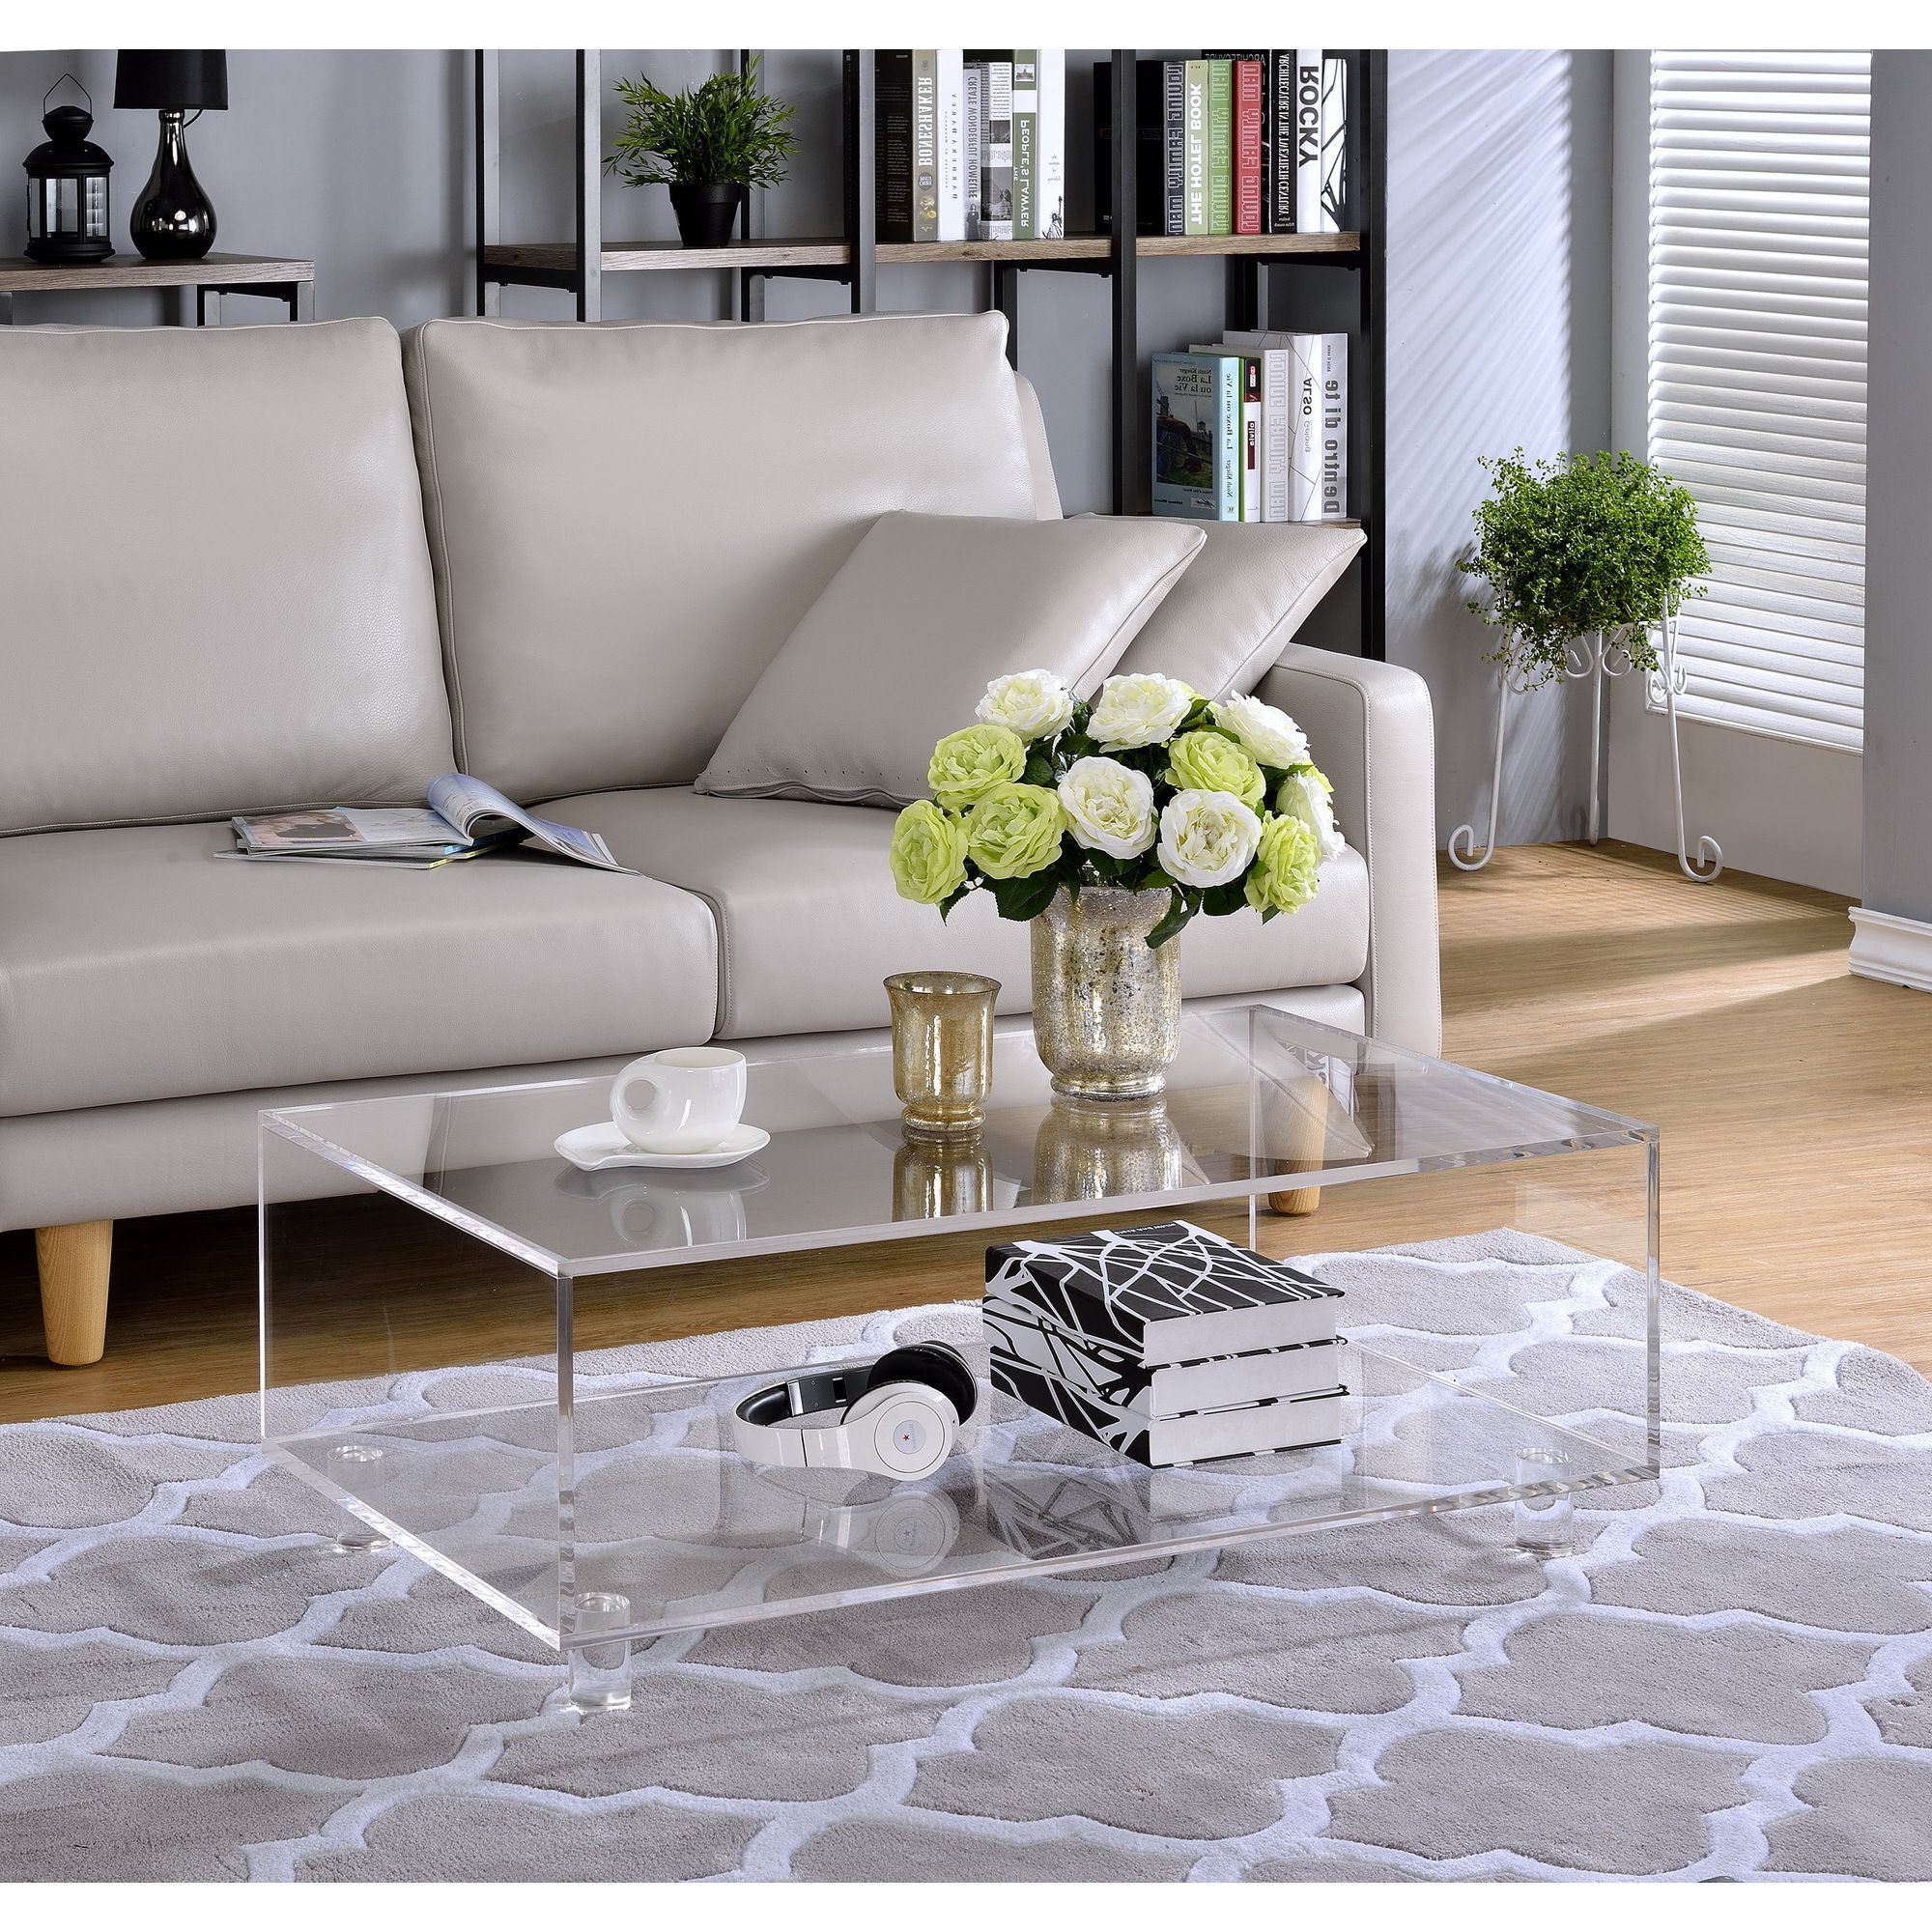 Bring It To The Pertaining To Fashionable Modern Acrylic Coffee Tables (View 5 of 20)